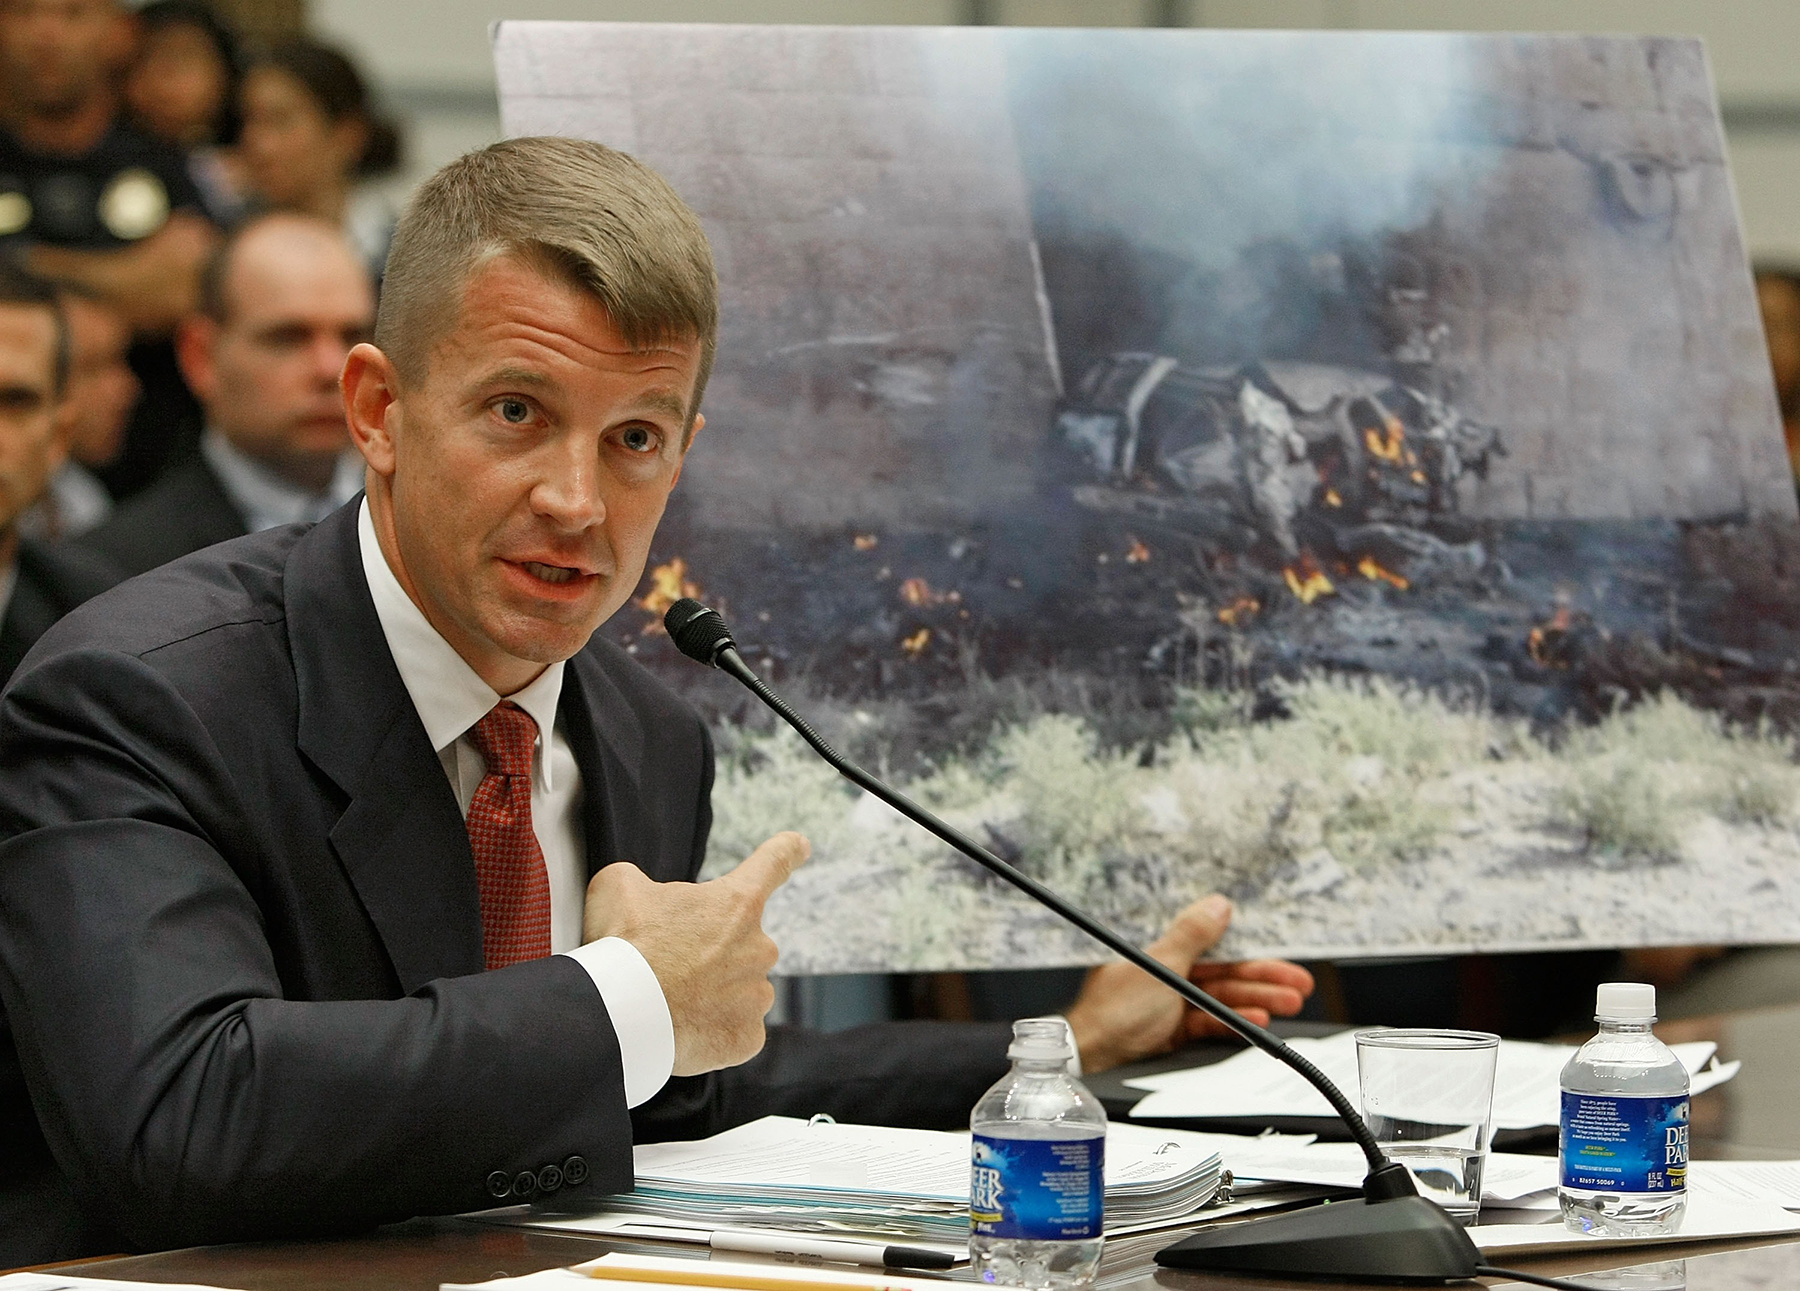 WASHINGTON - OCTOBER 02: Erik Prince, chairman of the Prince Group, LLC and Blackwater USA, holds up a picture showing the affect of a car bomb while testifying during a House Oversight and Government Reform Committee hearing on Capitol Hill October 2, 2007 in Washington DC. The committee is hearing testimony from officials regarding private security contracting in Iraq and Afghanistan. (Photo by Mark Wilson/Getty Images)